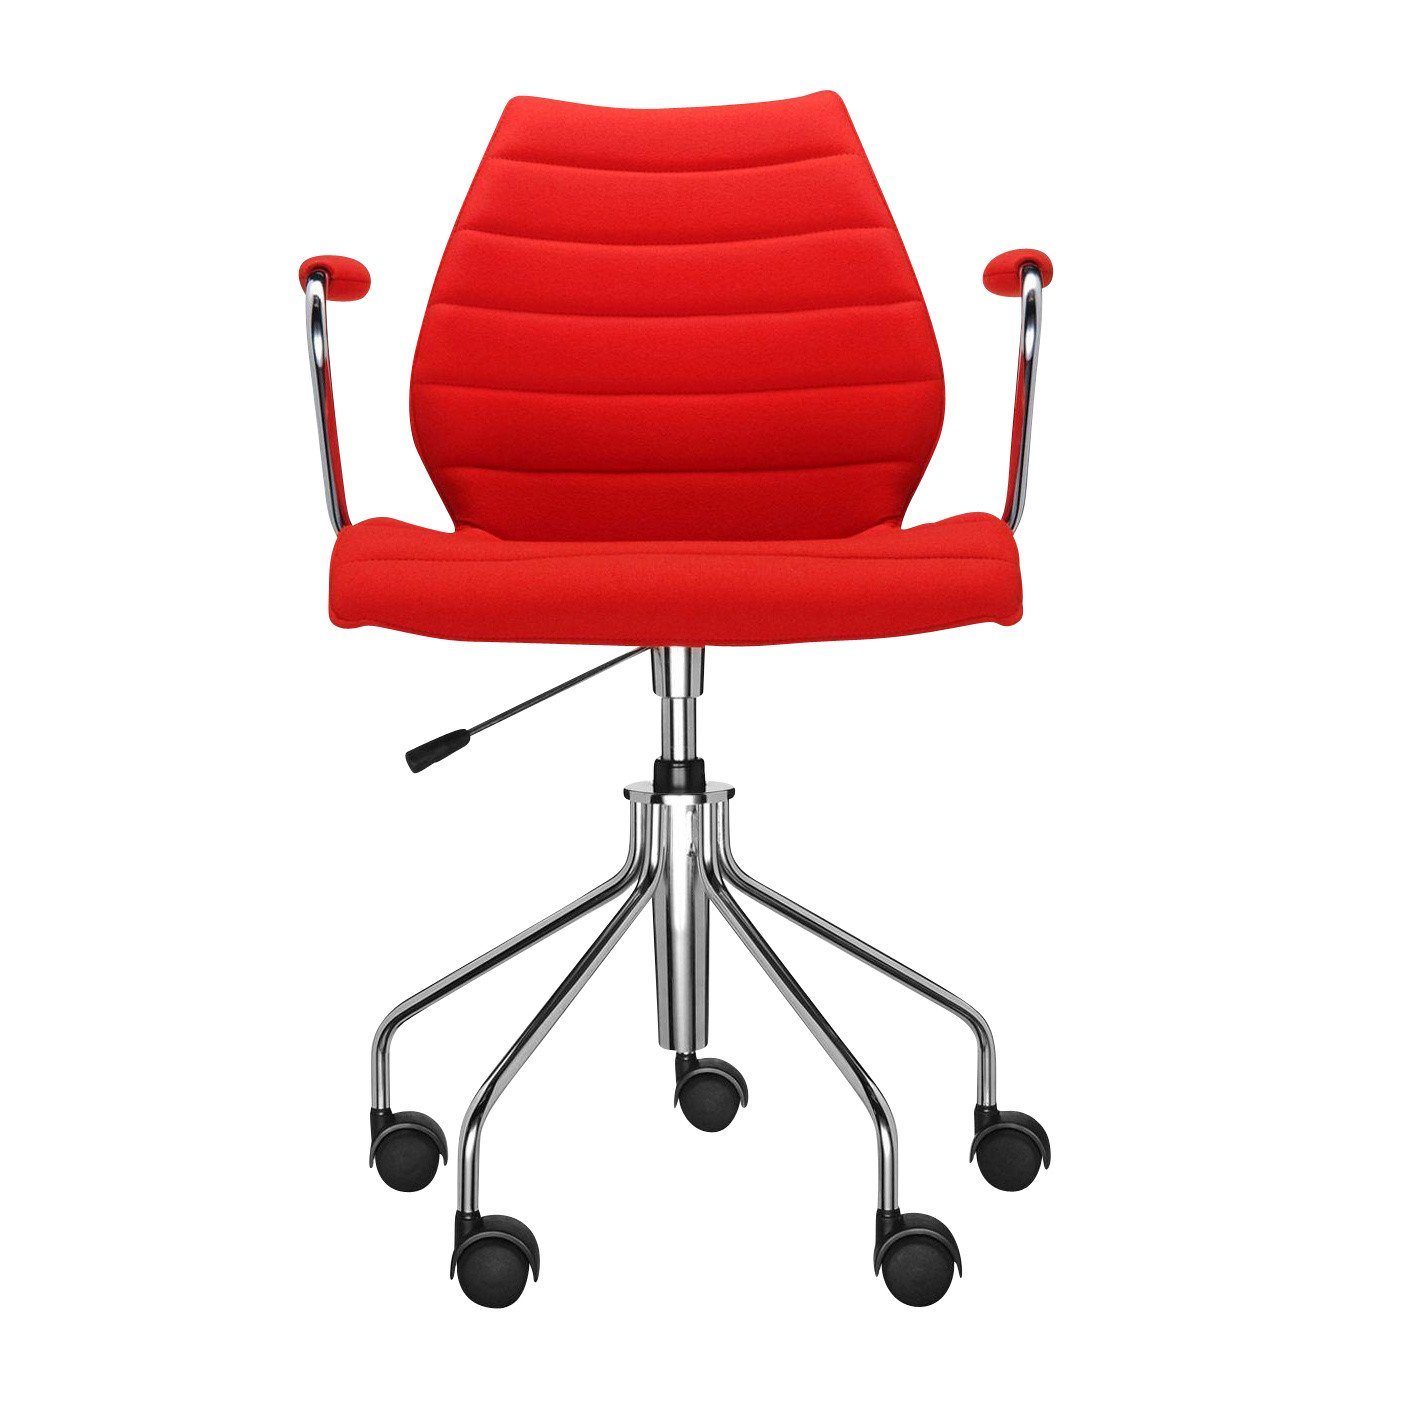 rakuten and chair mlm locking office gaming ids casters high executive shop racing video headrest red product back style with